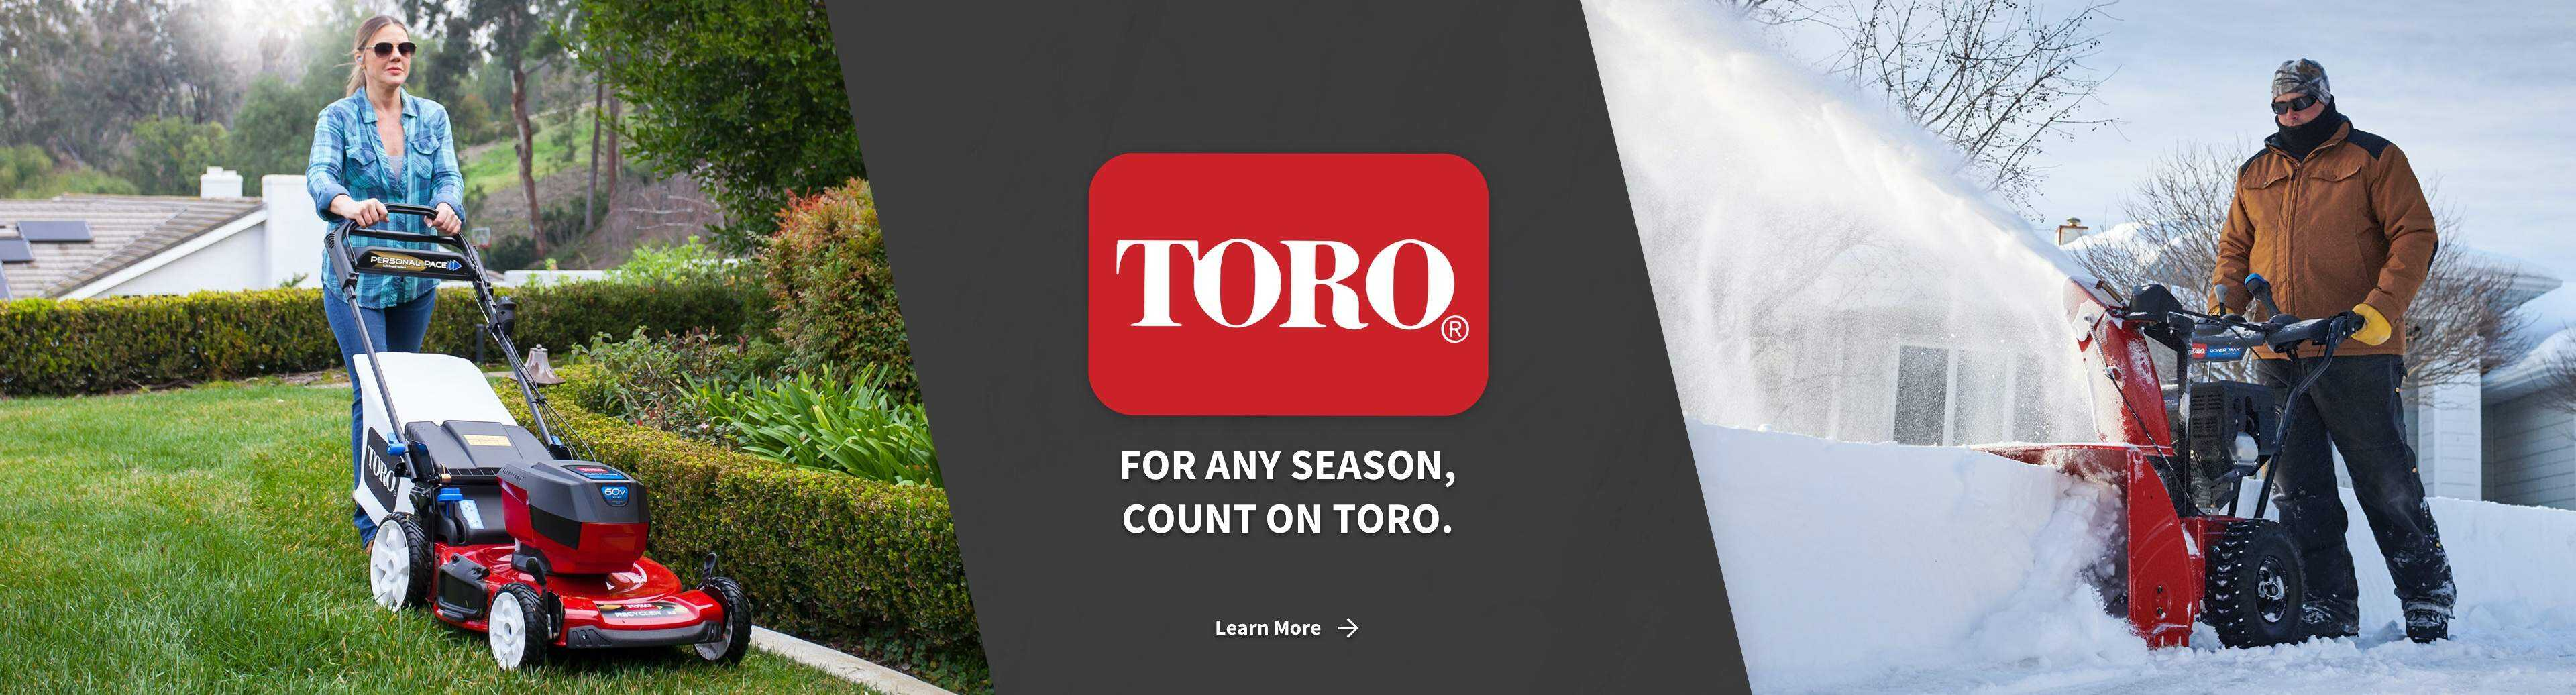 Toro push lawn mower and snow blower with Toro lawn mower - For Any Season, Count On Toro - Learn More